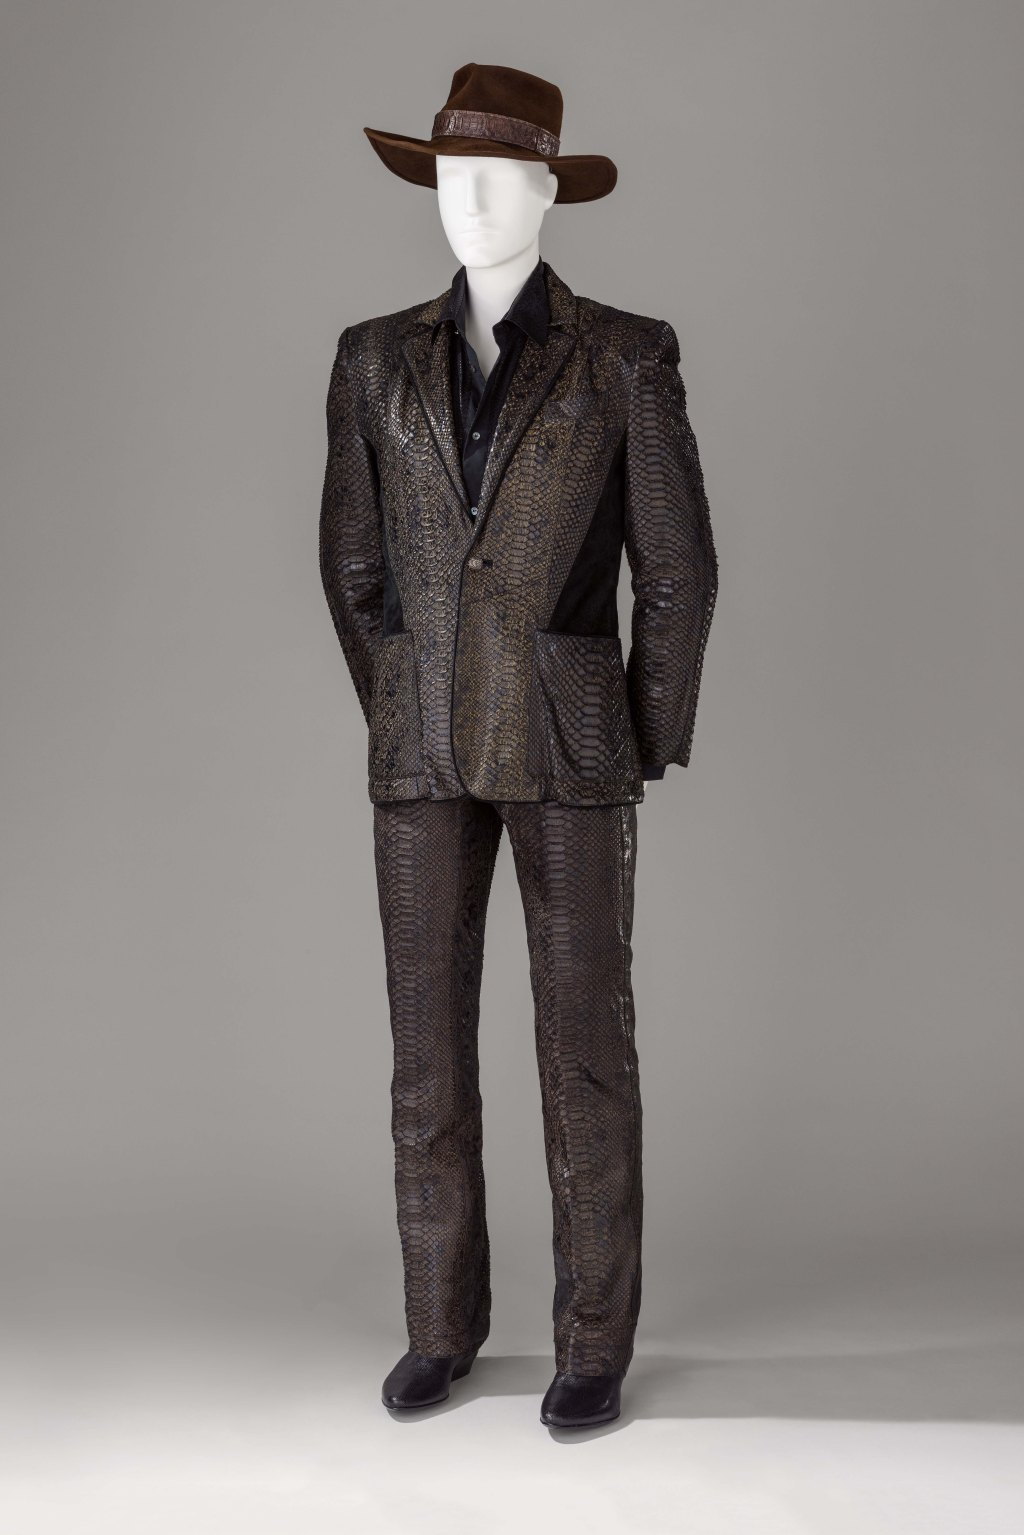 James Goldstein's python Roberto Cavalli suit.